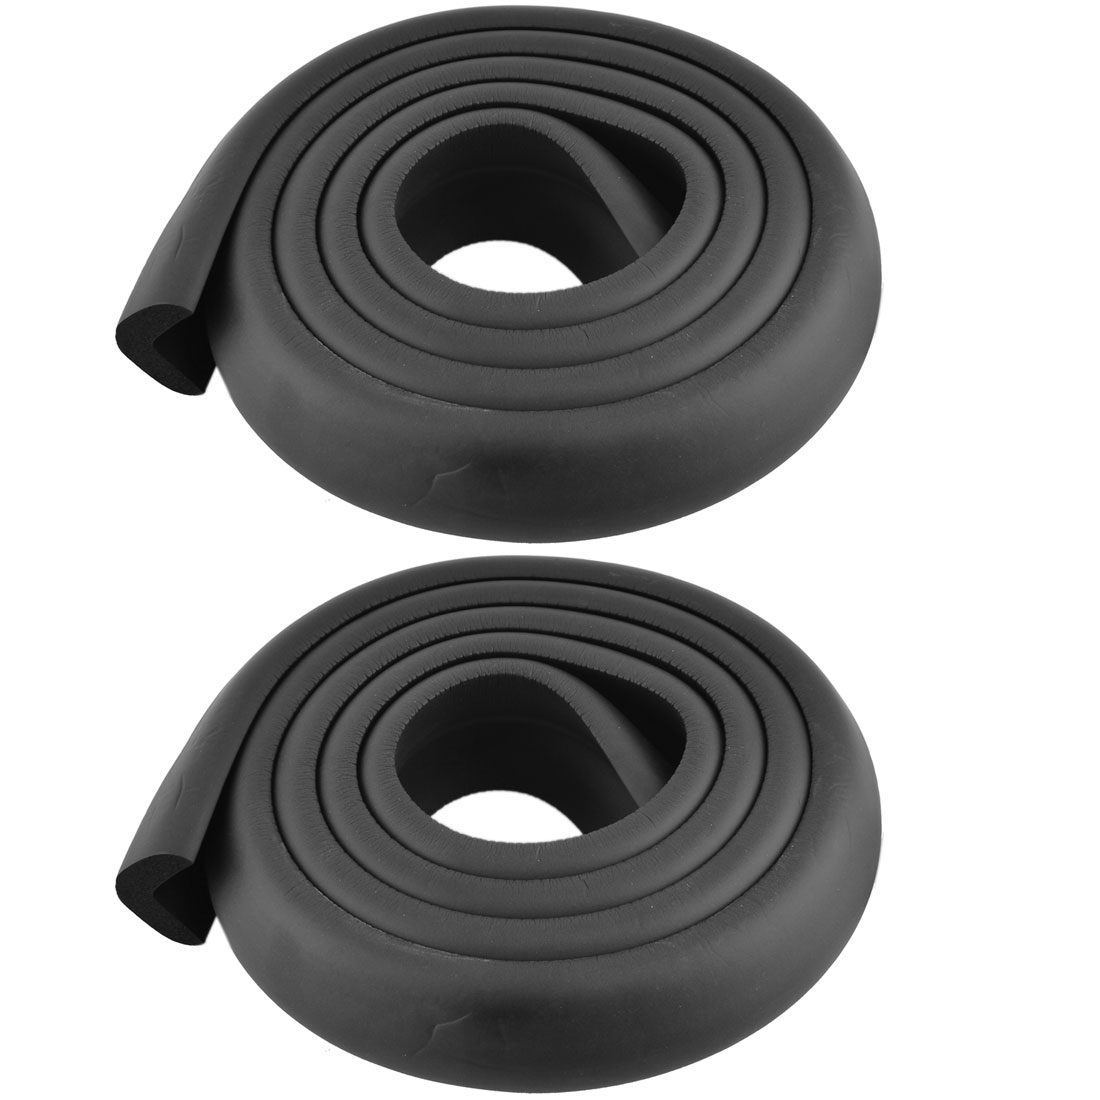 Furniture Dresser Foam Rubber Corner Edge Cover Protector Cushion Black 2pcs